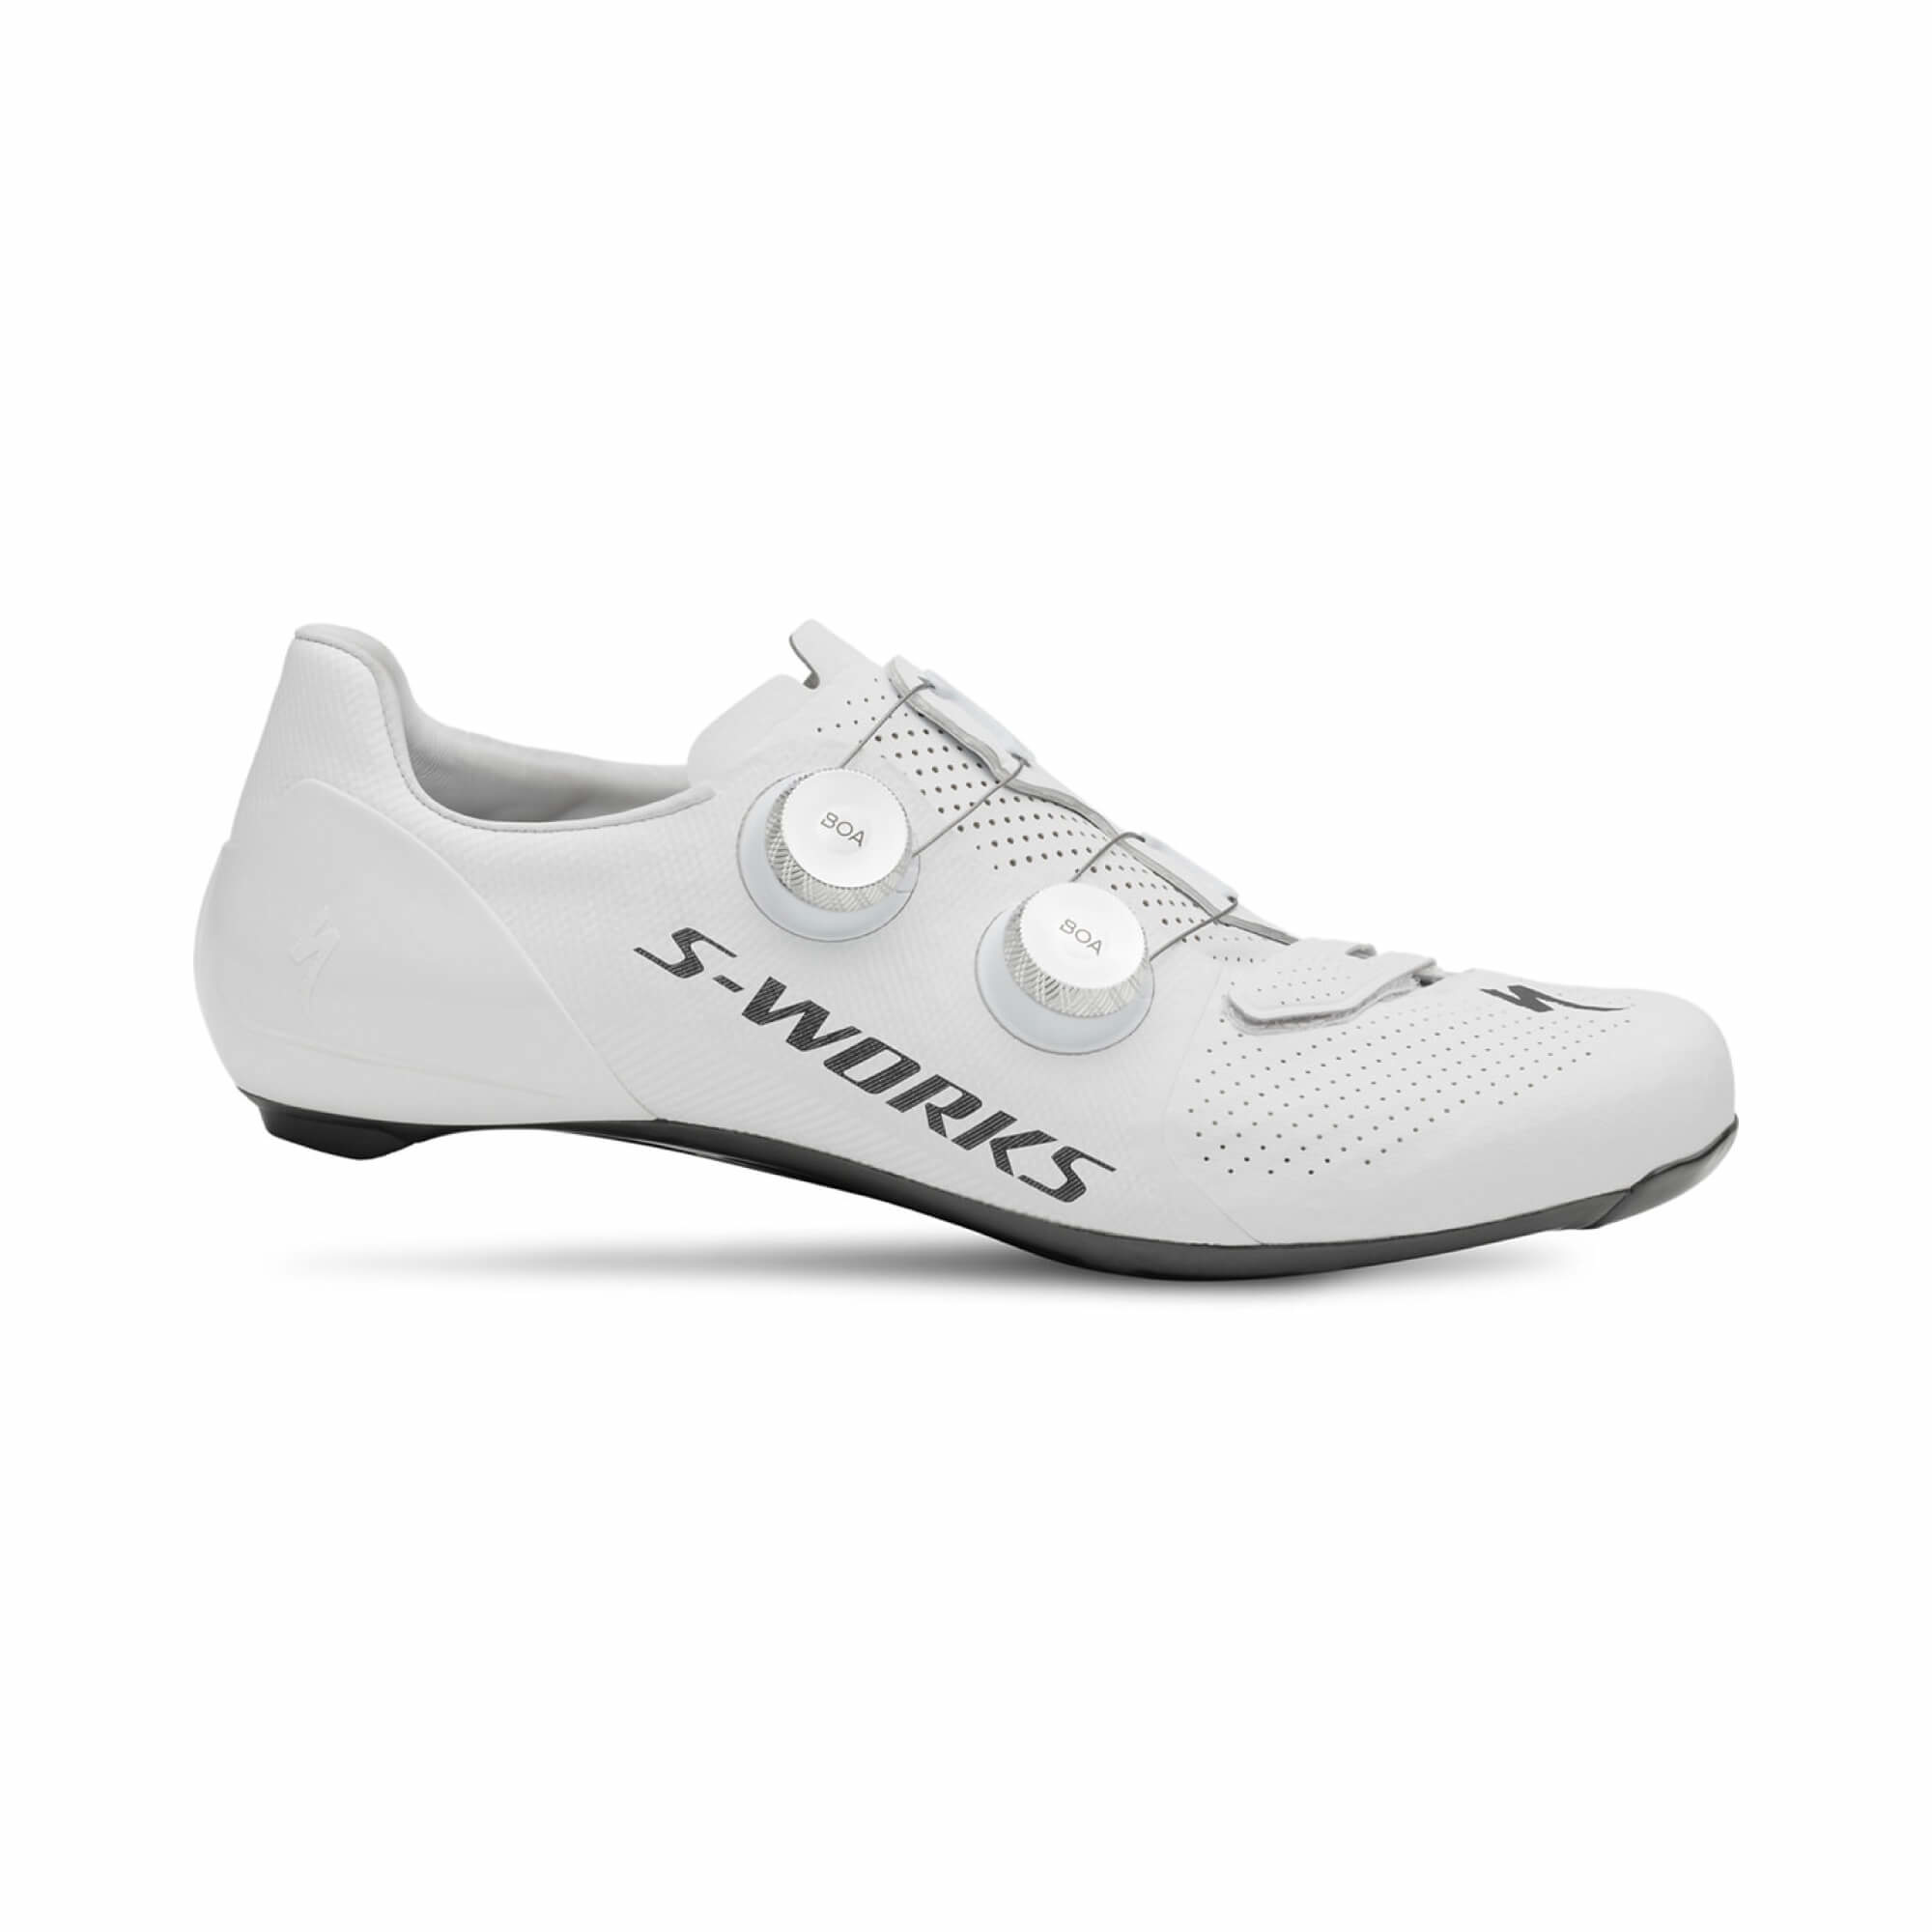 S-Works 7 Road Shoe-5